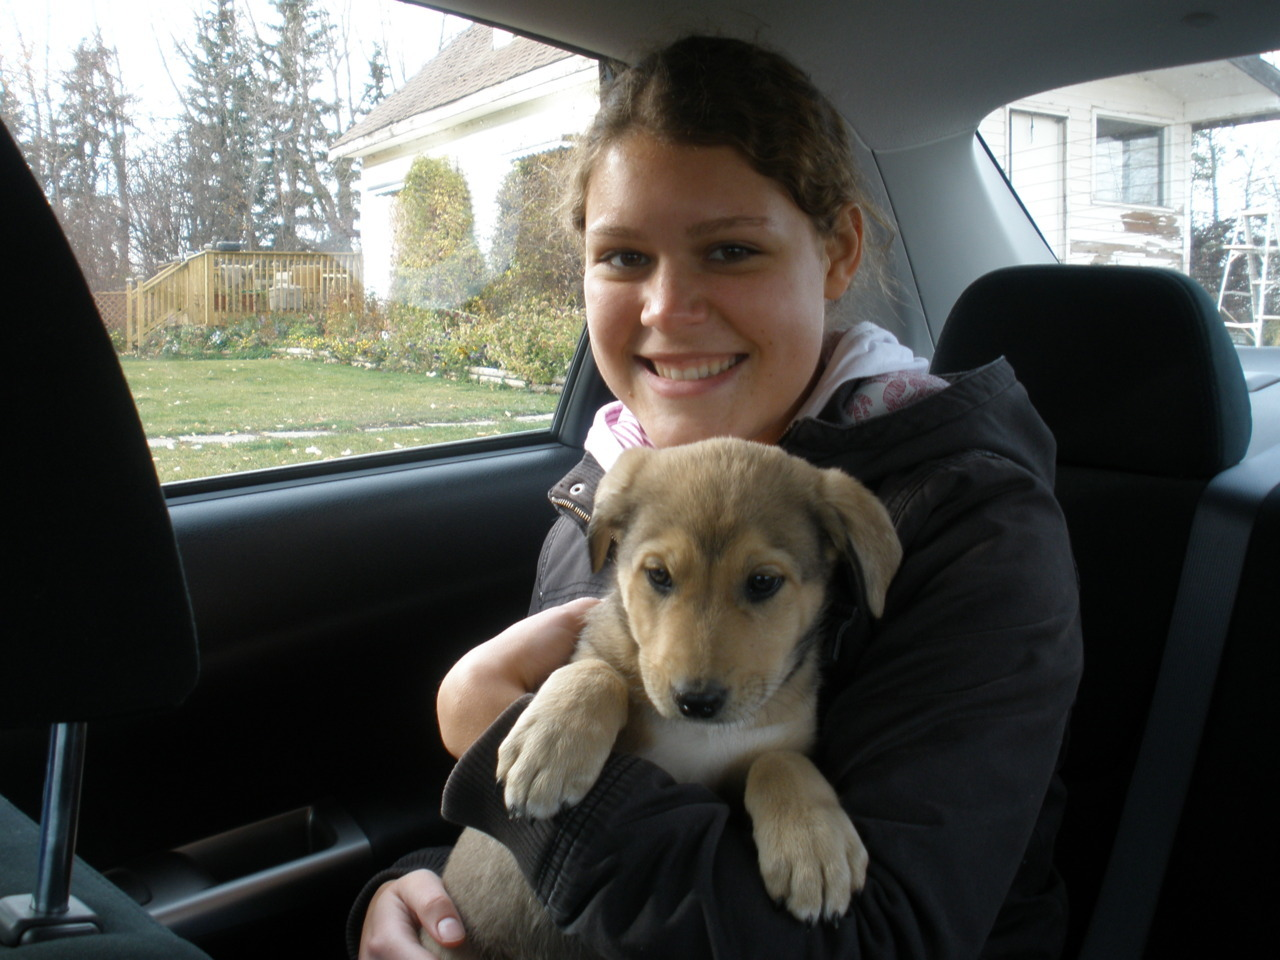 huggingdogs:  Gavin at 8 weeks, bringing him to his new home, and him now, a year and a half later.   Submitted by Carmen : supraorbital.tumblr.com  Baaaaaaw I love doggiiiiies